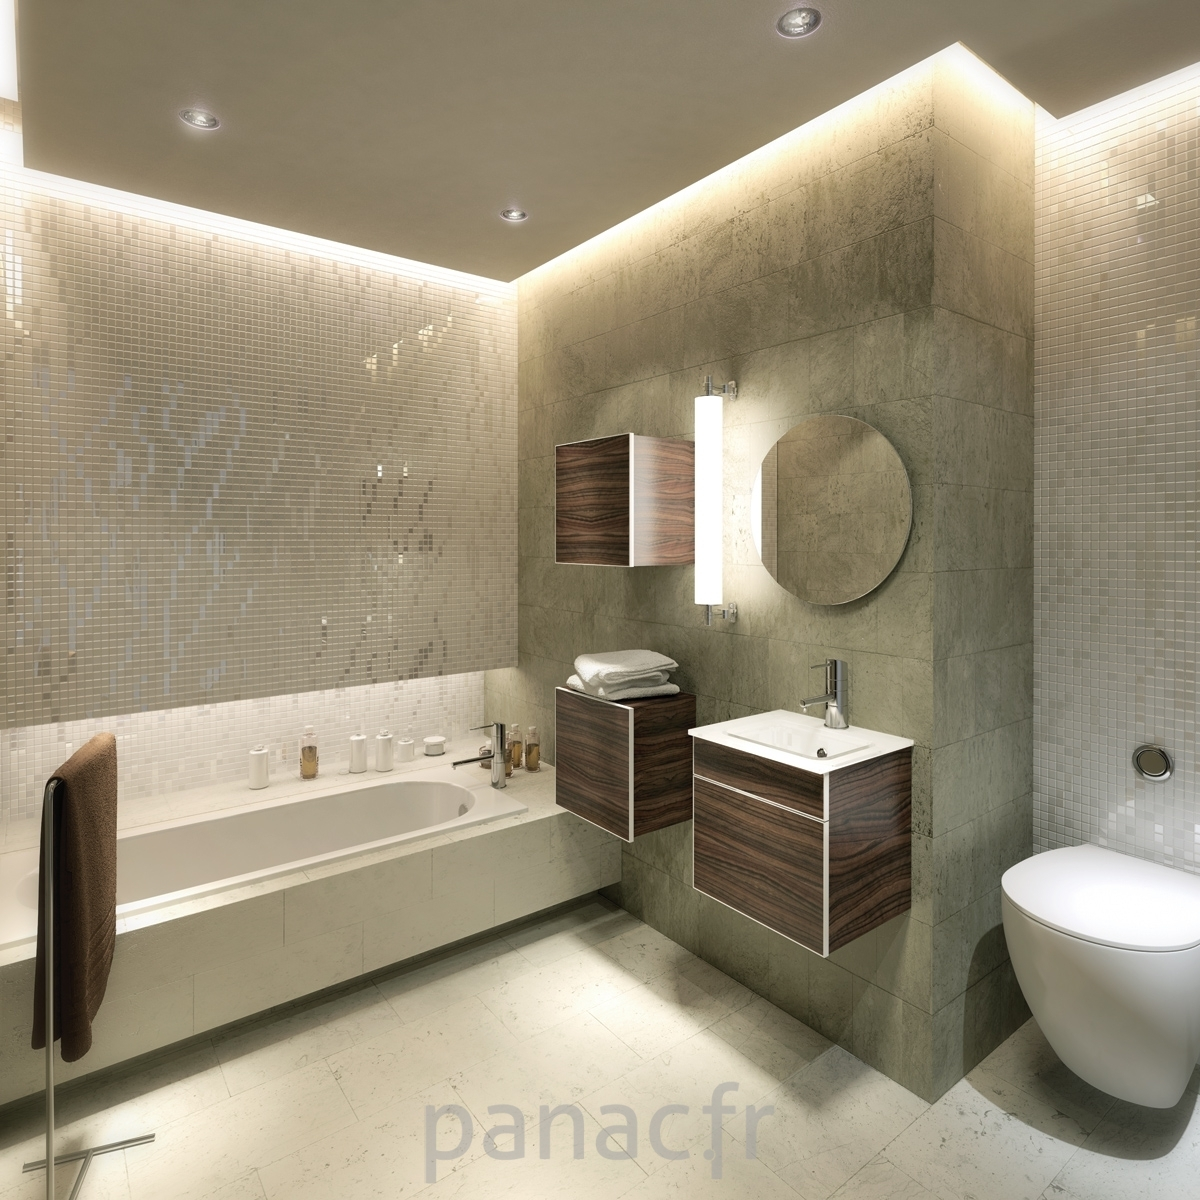 salle de bain moderne salle de bain design. Black Bedroom Furniture Sets. Home Design Ideas